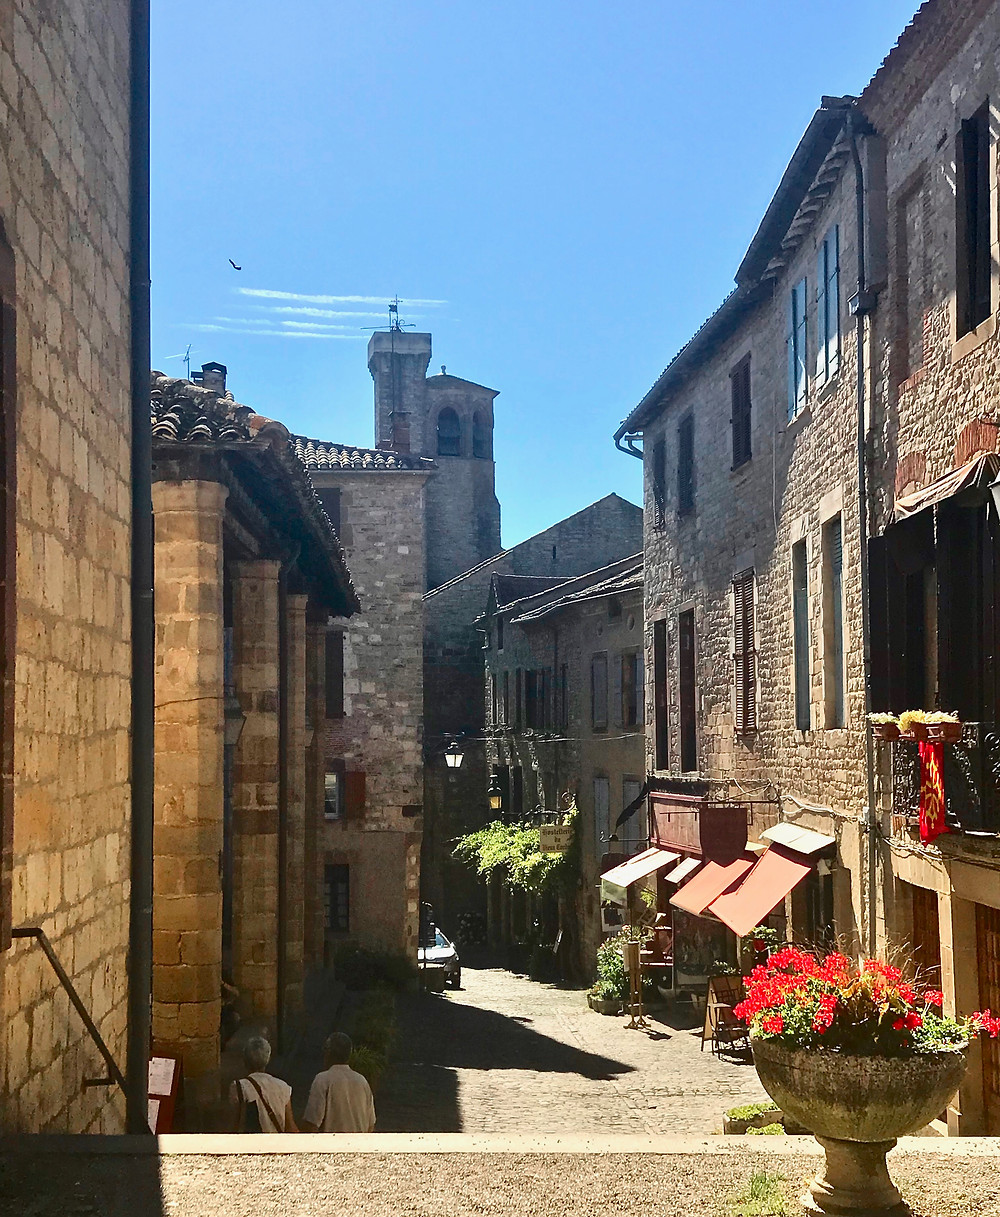 yet another dreamy cobbled street in Cordes Sur Ceil